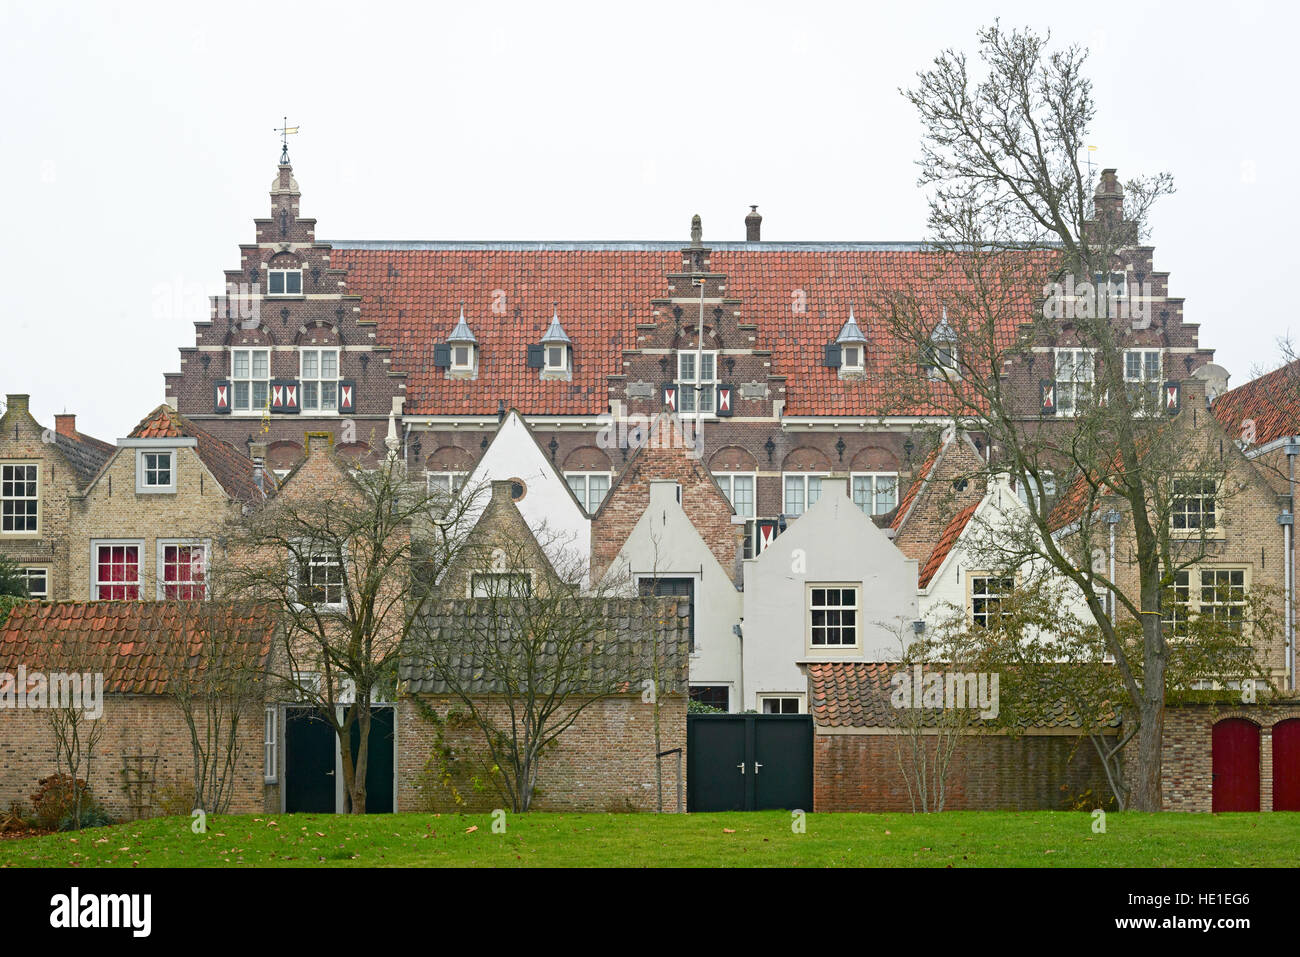 View on the Statenschool in Dordrecht with 17th century houses in front; built in 1913 in the neo-dutch Renaissance - Stock Image